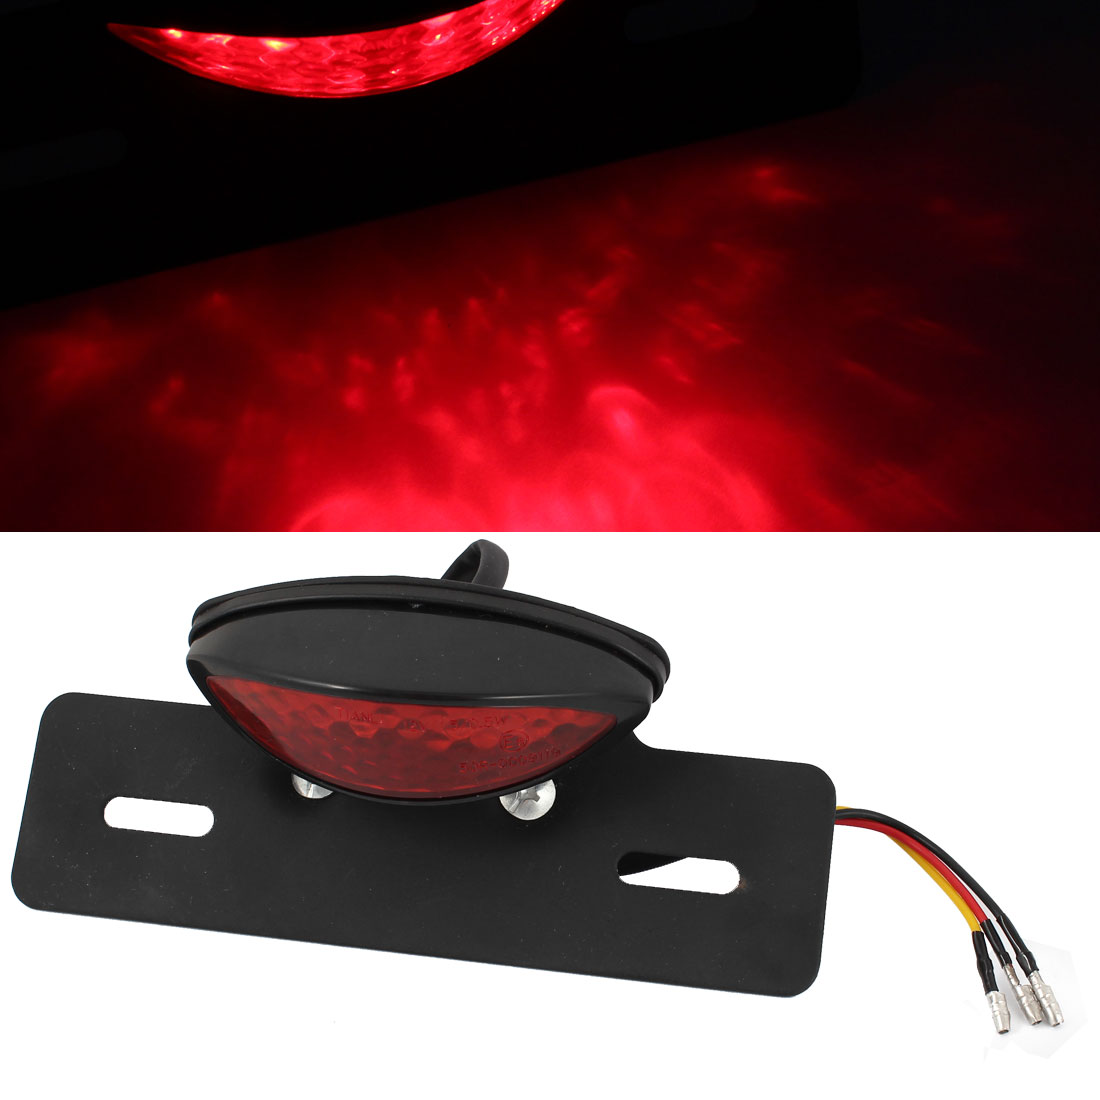 X Autohaux Motorcycle 12V Red 2 Modes 19 Led Tail Light Custom License Plate Holder(China (Mainland))